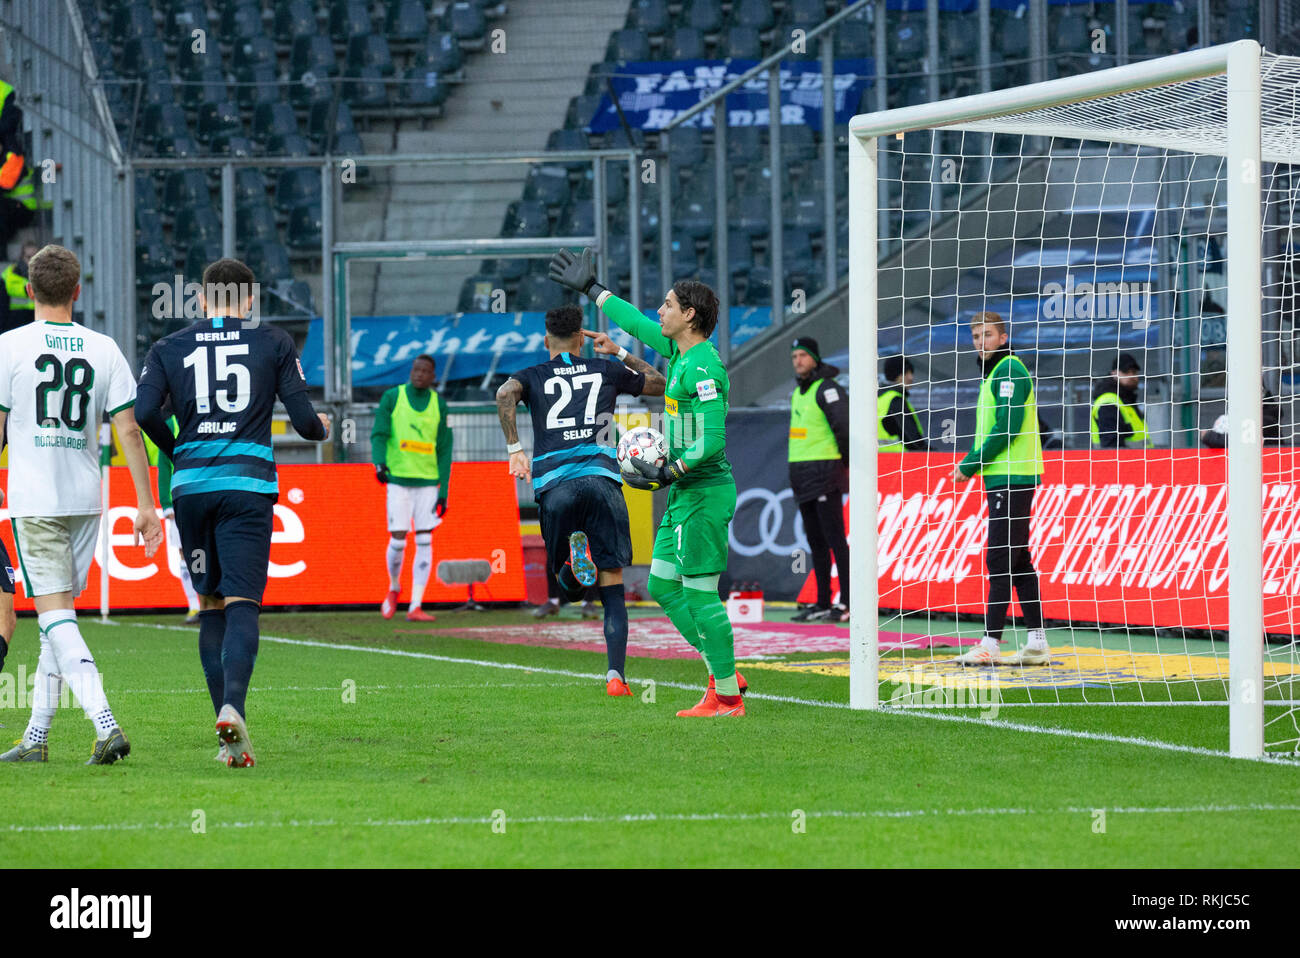 Sport, Fussball, Bundesliga, 2018/2019, Borussia Moenchengladbach vs Hertha BSC Berlin 0-3, Stadion Borussia-Park, Tor zum 0-3, v.l.n.r. Matthias Ginter (MG), Marko Grujic (Hertha), Torschuetze Davie Selke (Hertha), Torwart Yann Sommer (MG), DFL REGULATIONS PROHIBIT ANY USE OF PHOTOGRAPHS AS IMAGE SEQUENCES AND/OR QUASI-VIDEO, sports, football, Bundesliga, 2018/2019, Borussia Moenchengladbach vs Hertha BSC Berlin 0-3, Stadium Borussia Park, 0-3 goal, f.l.t.r. Matthias Ginter (MG), Marko Grujic (Hertha), goal scorer Davie Selke (Hertha), keeper Yann Sommer (MG), DFL REGULATIONS PROHIBIT ANY USE - Stock Image